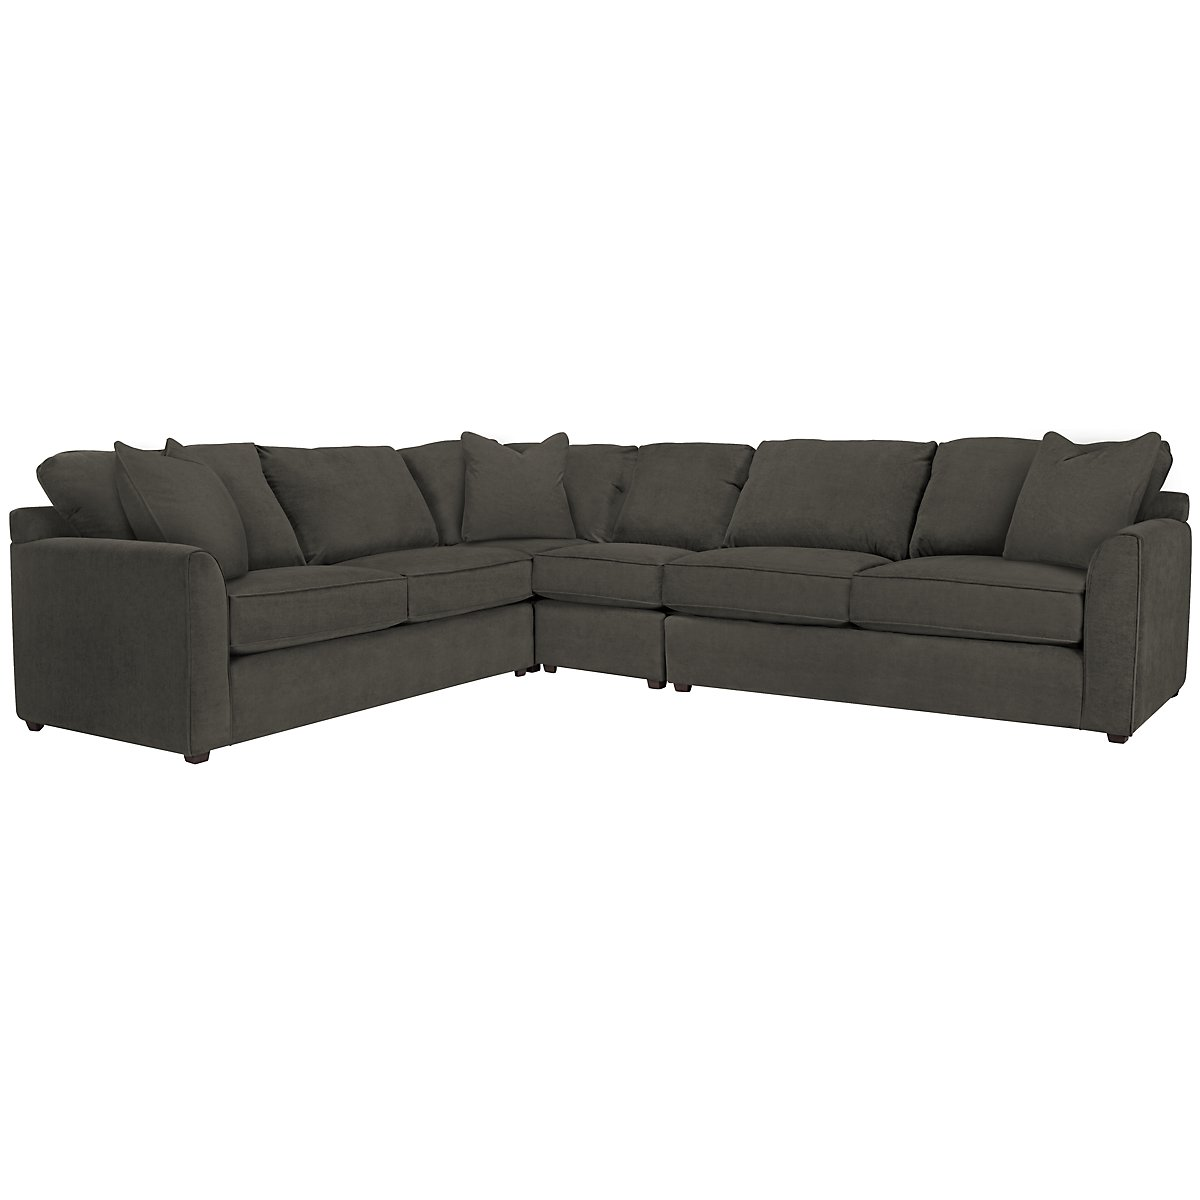 Express3 Dk Gray Microfiber Large Two-Arm Sectional